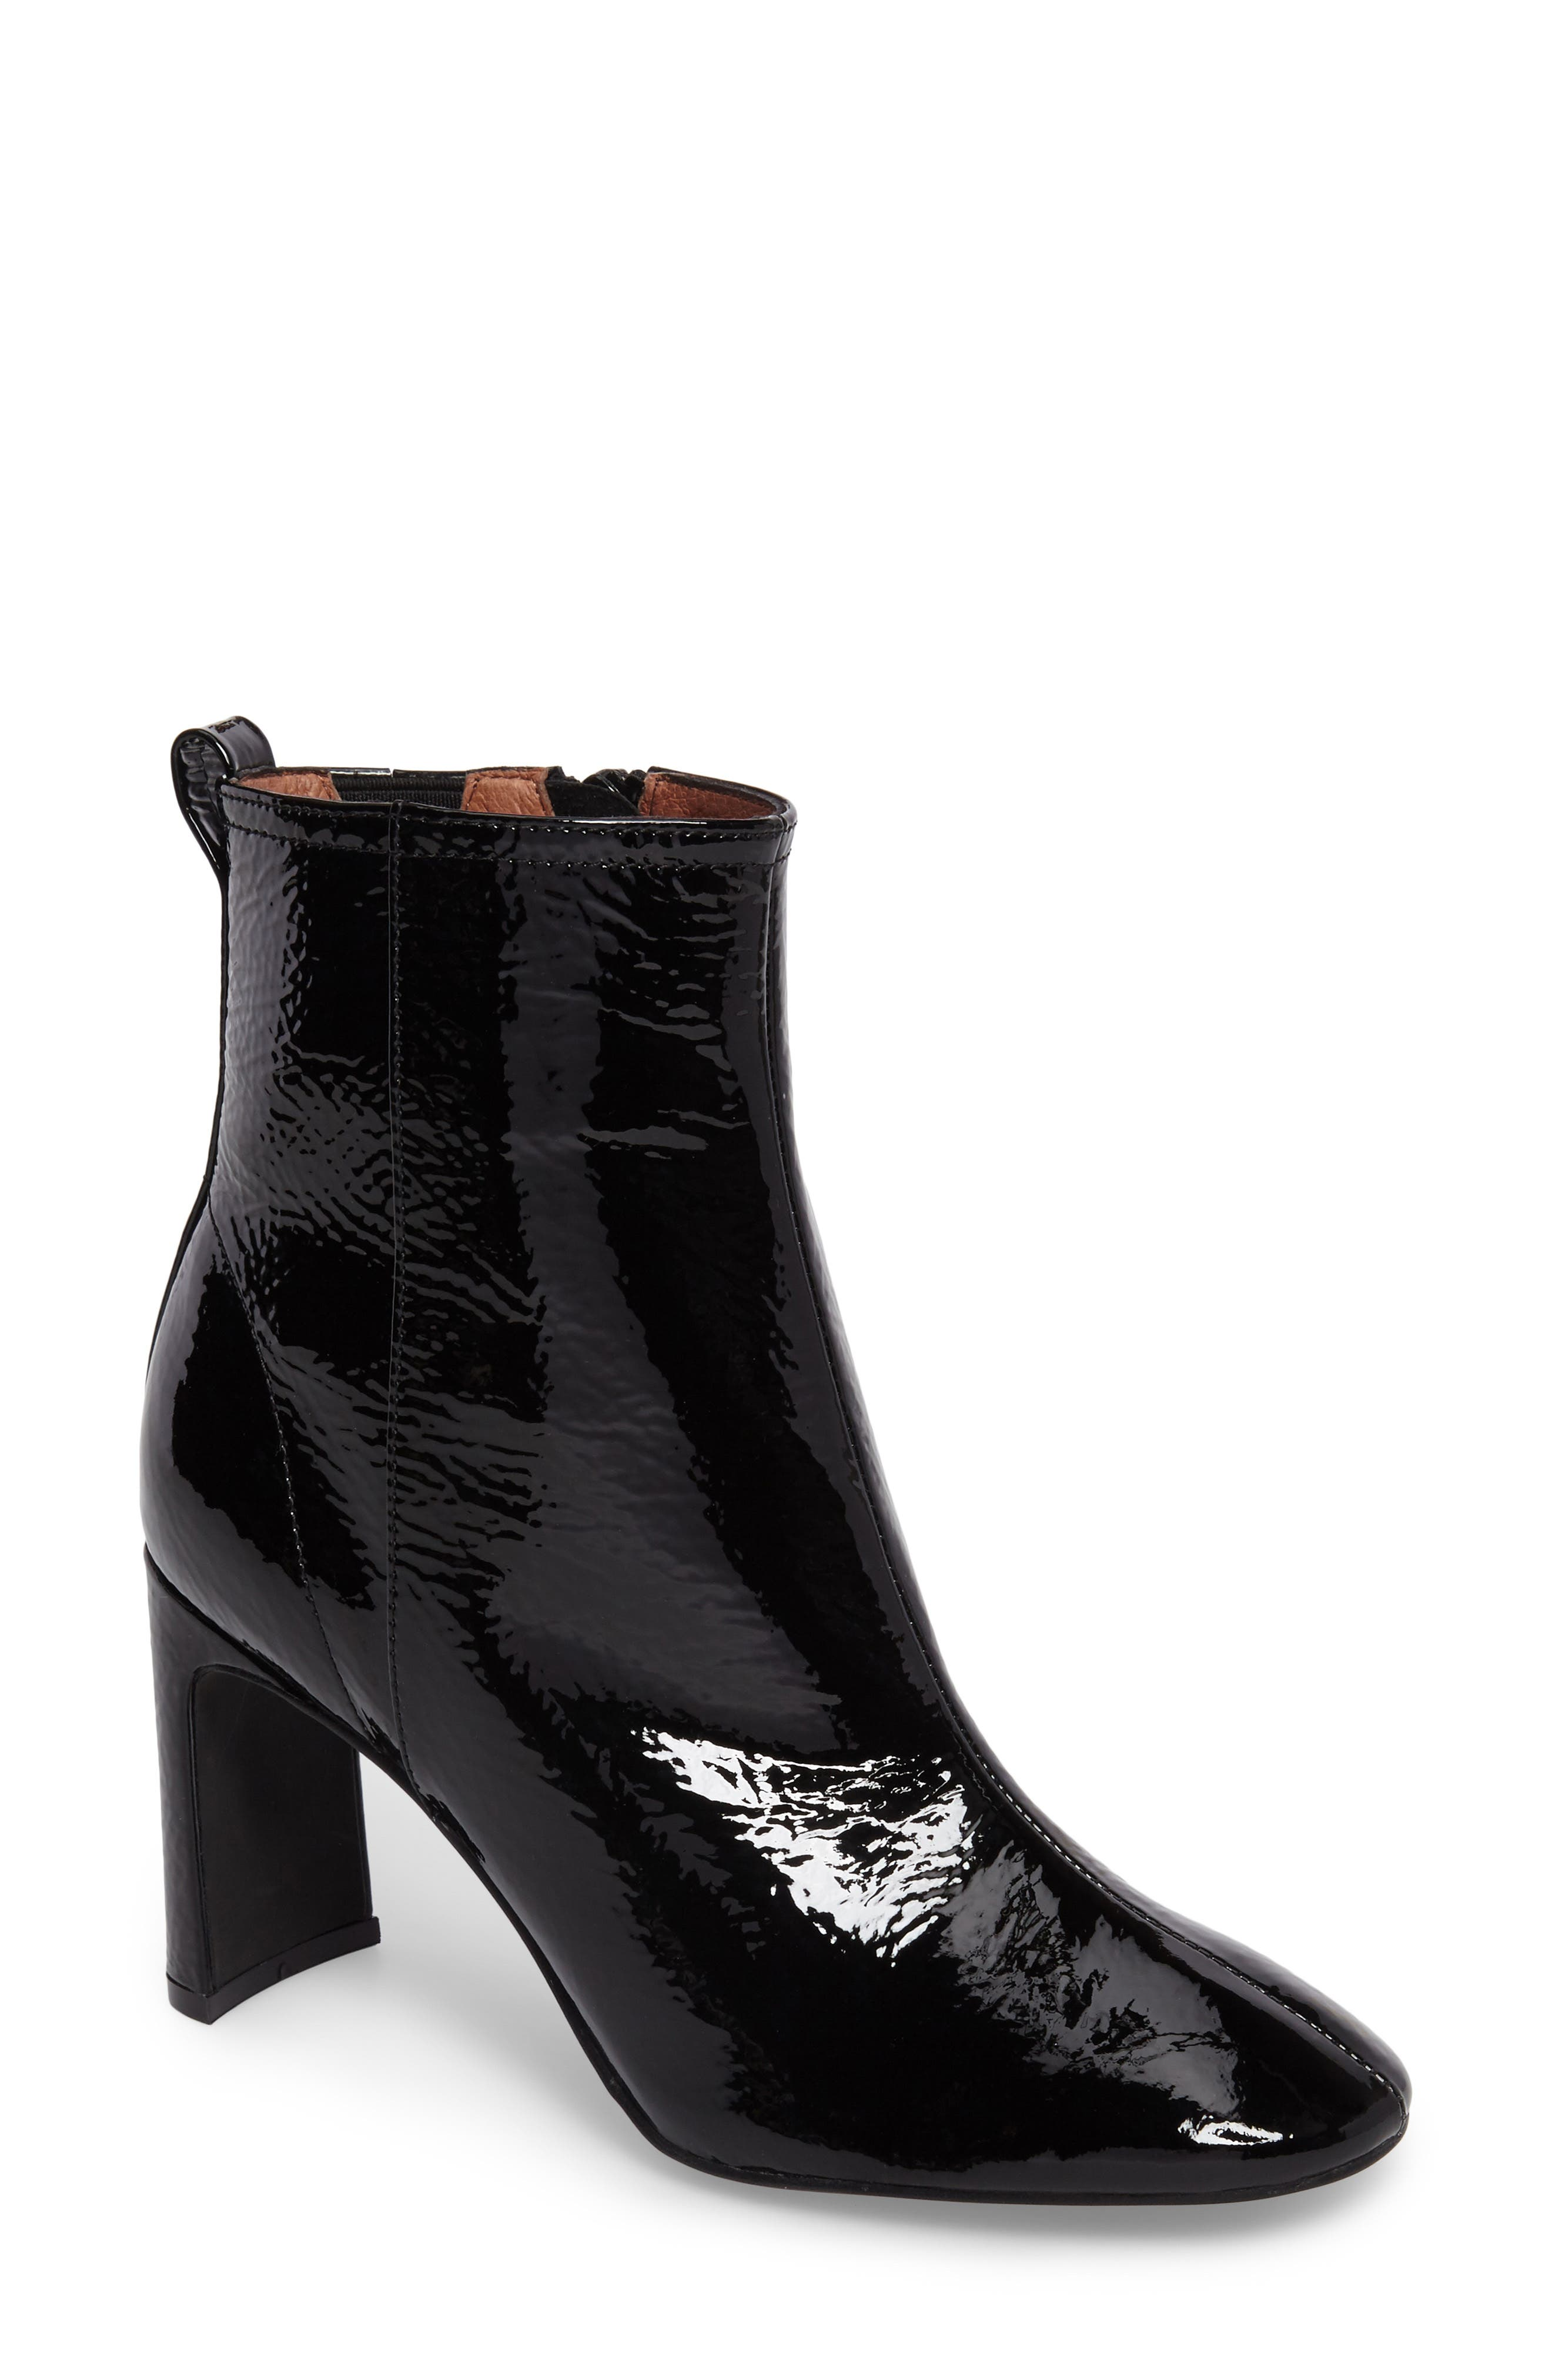 Chapel Curved Heel Bootie,                             Main thumbnail 1, color,                             Black Crinkle Patent